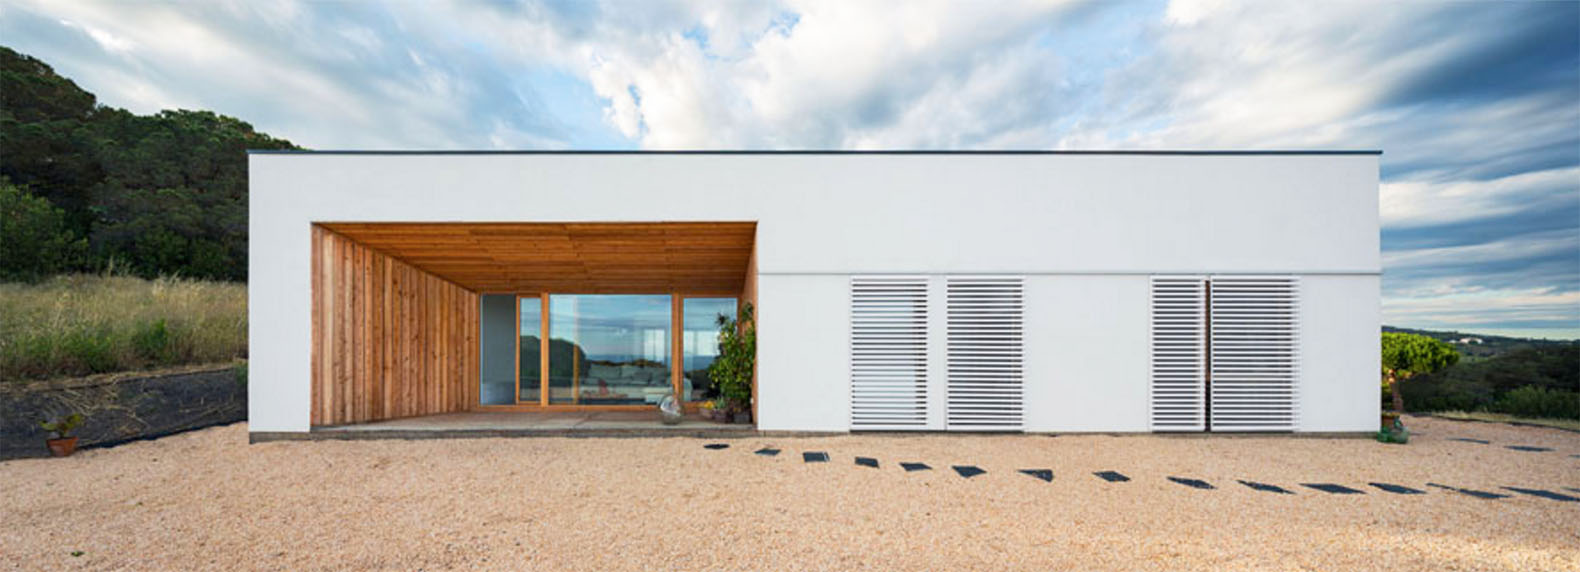 RM Passive House In Spain Is A Zero Energy Mediterranean Dream Home